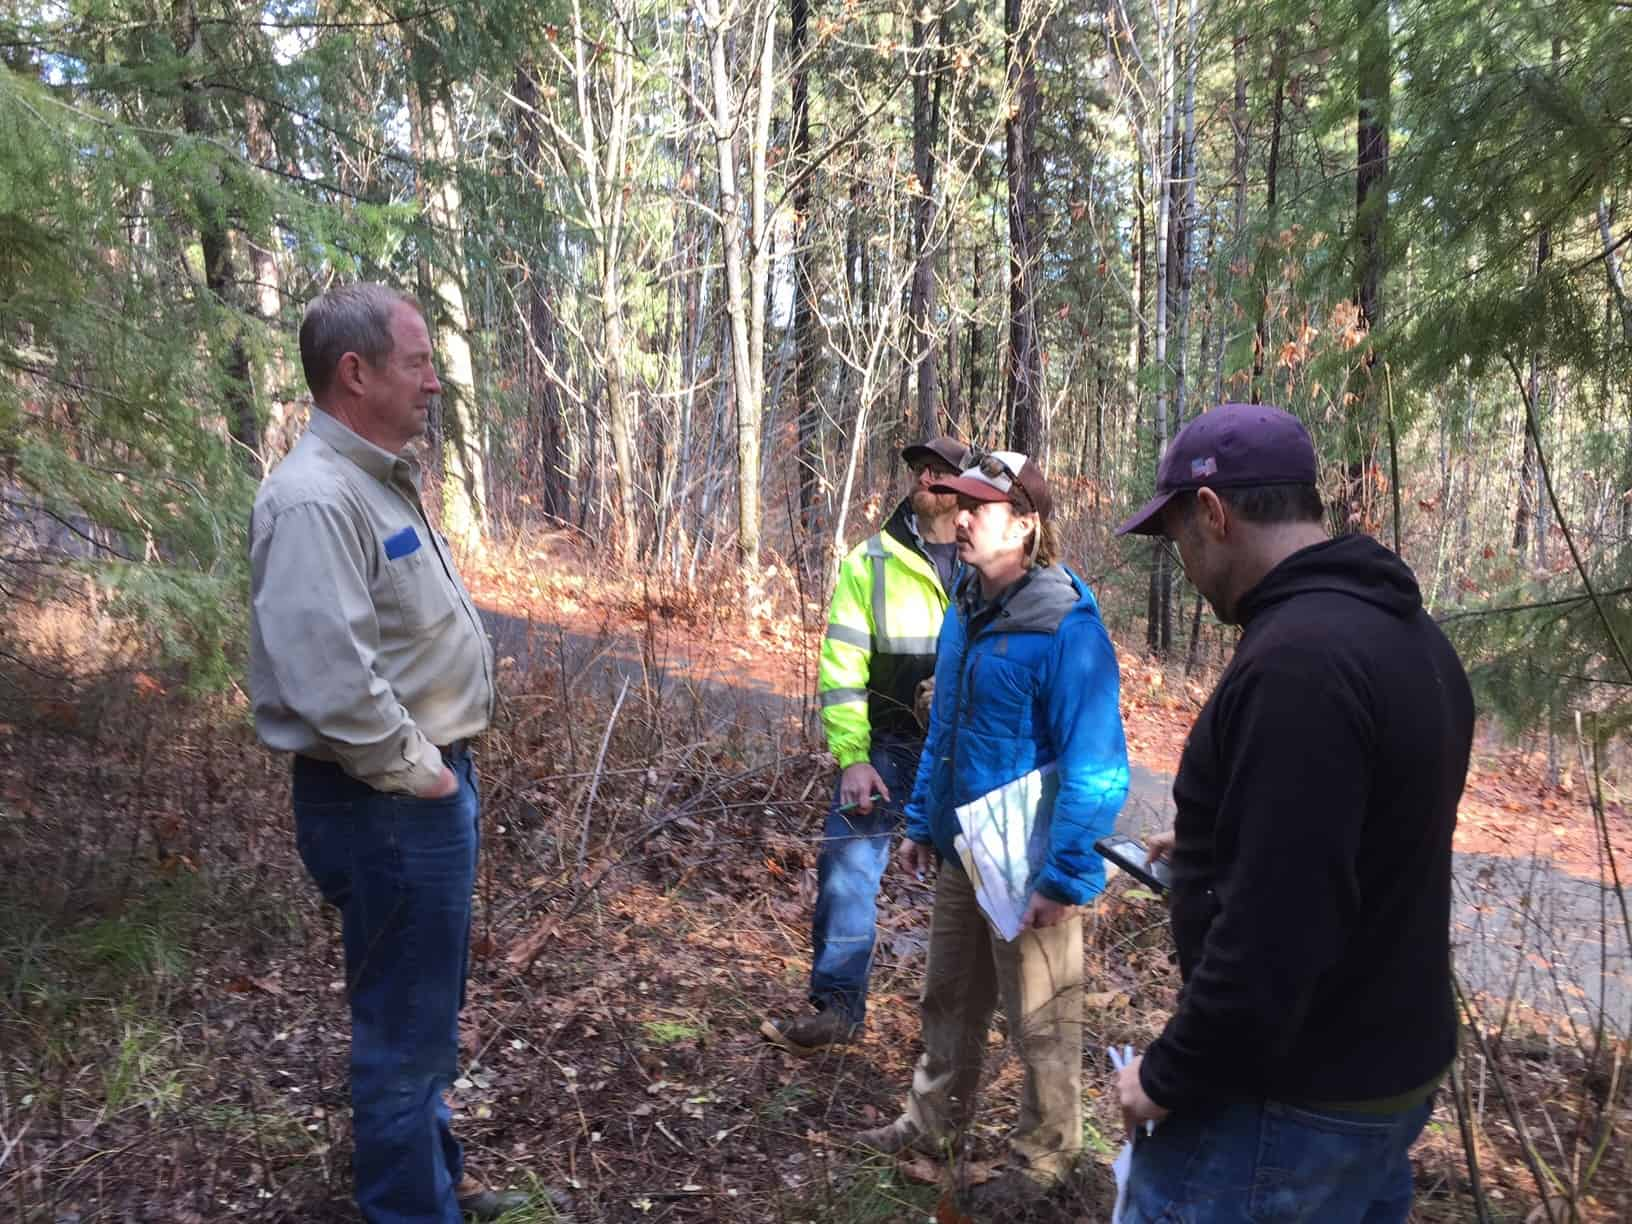 Working with landowners to develop the first new Firewise Community in the Leavenworth area since 2008. Landowners agreed to develop a community shaded fuel break which will be implemented in 2017.